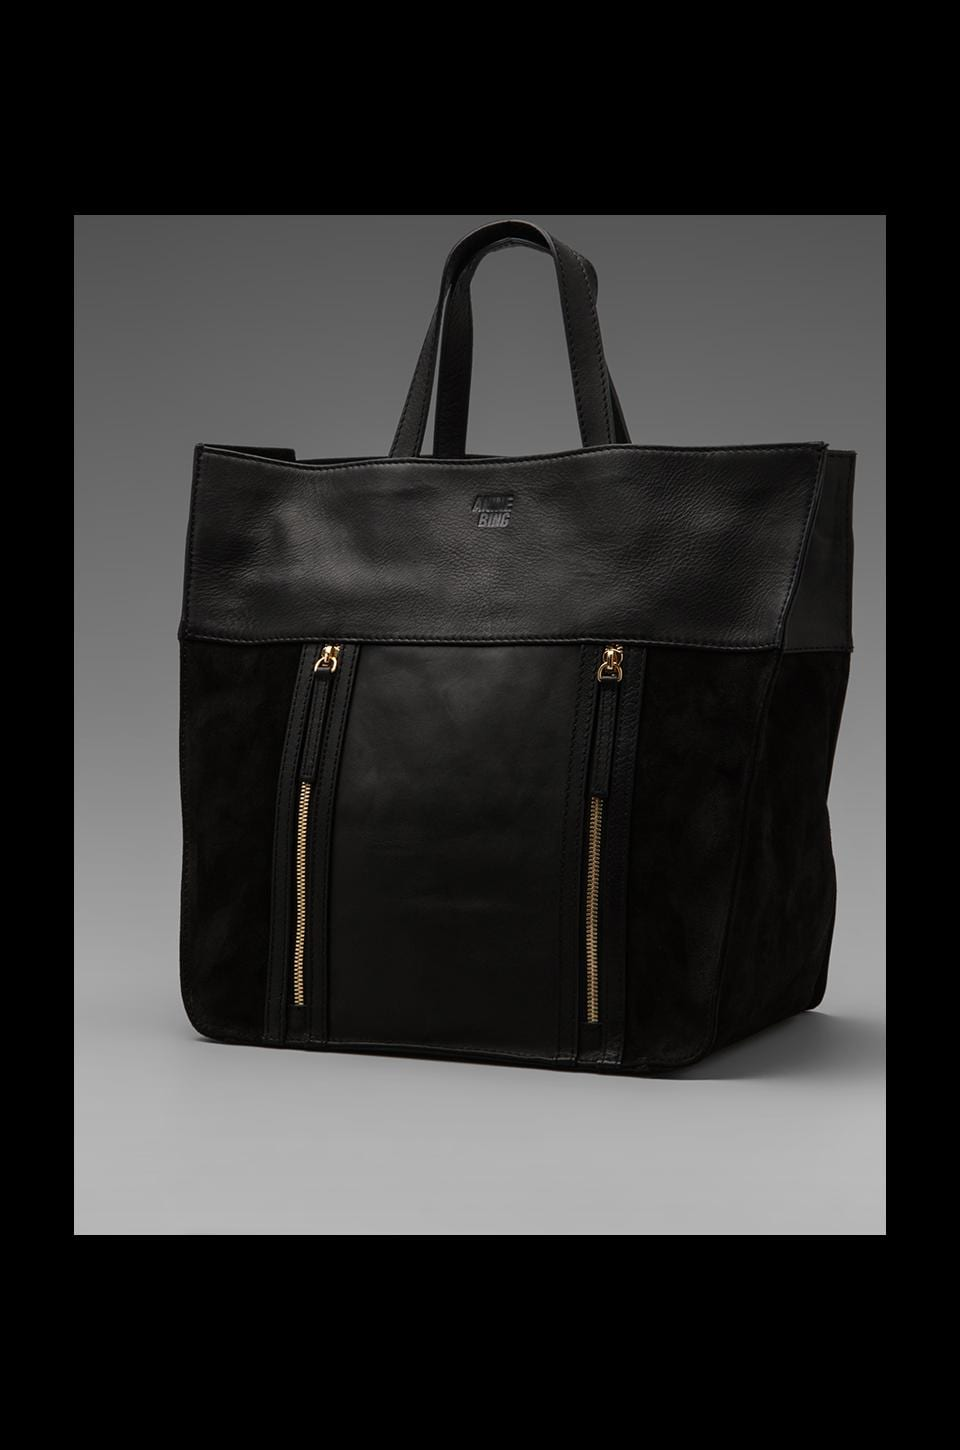 ANINE BING Leather Tote in Black Suede/Gold